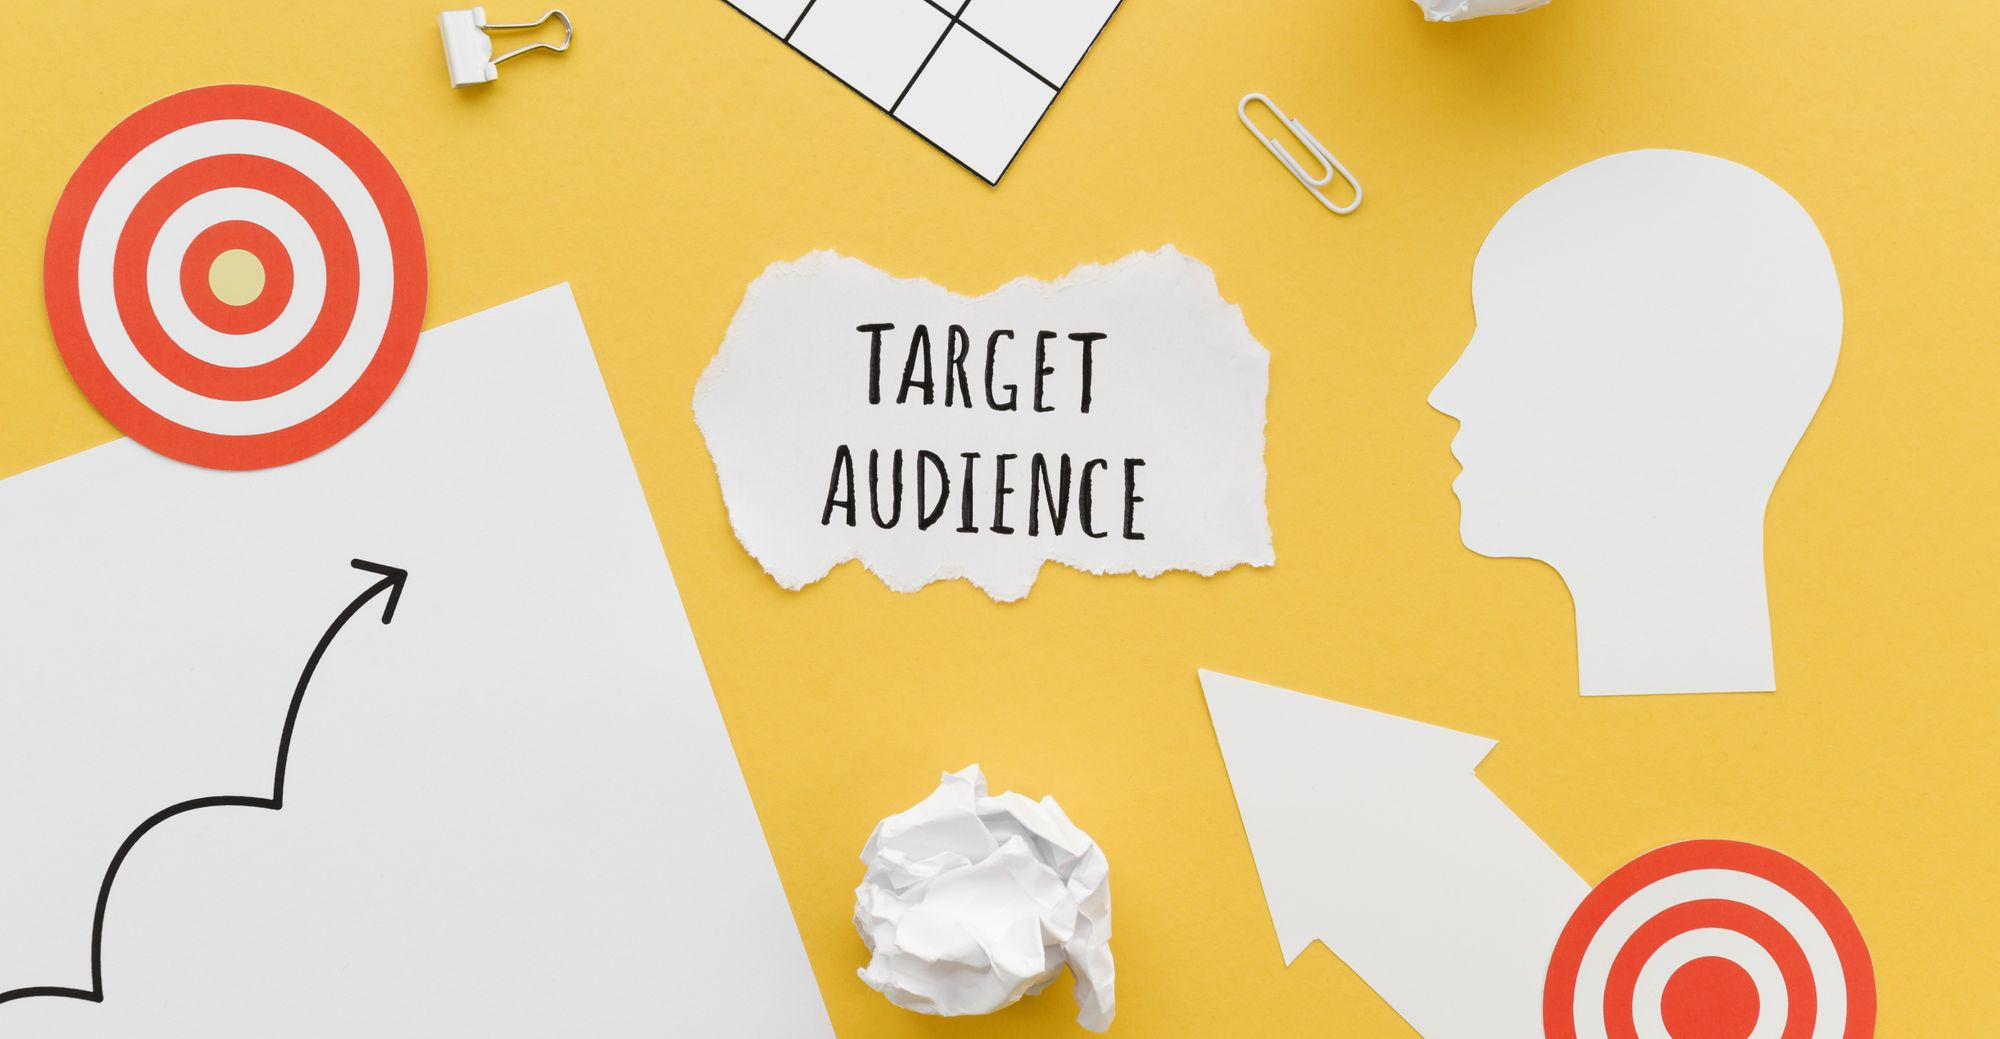 Choosing a topic for Video Storytelling: Research your target audience first